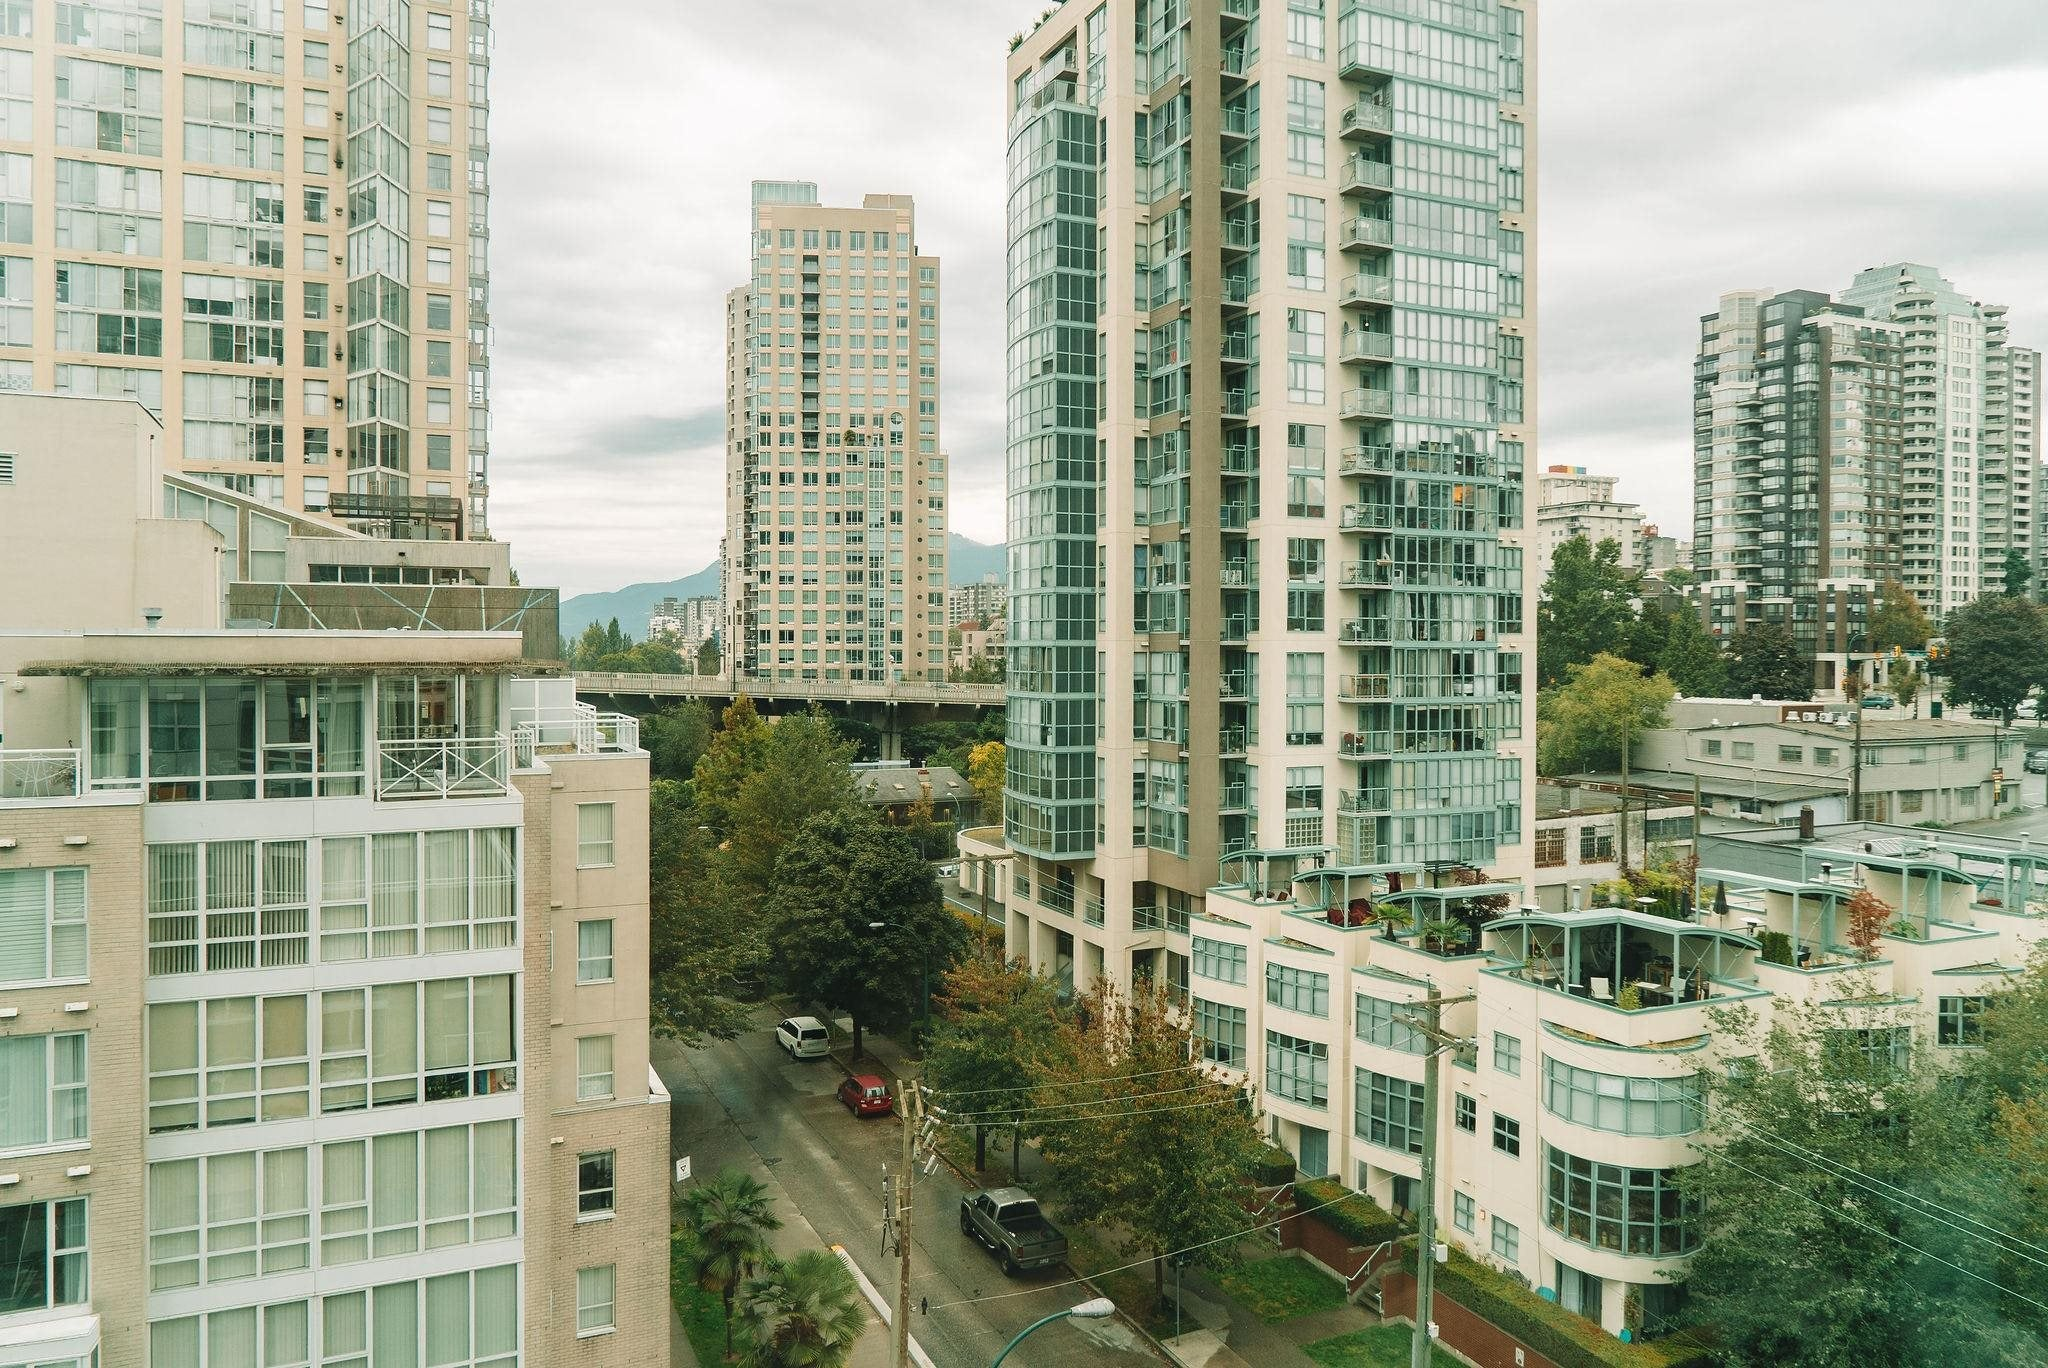 1009 1500 HORNBY STREET - Yaletown Apartment/Condo for sale, 2 Bedrooms (R2617441) - #27